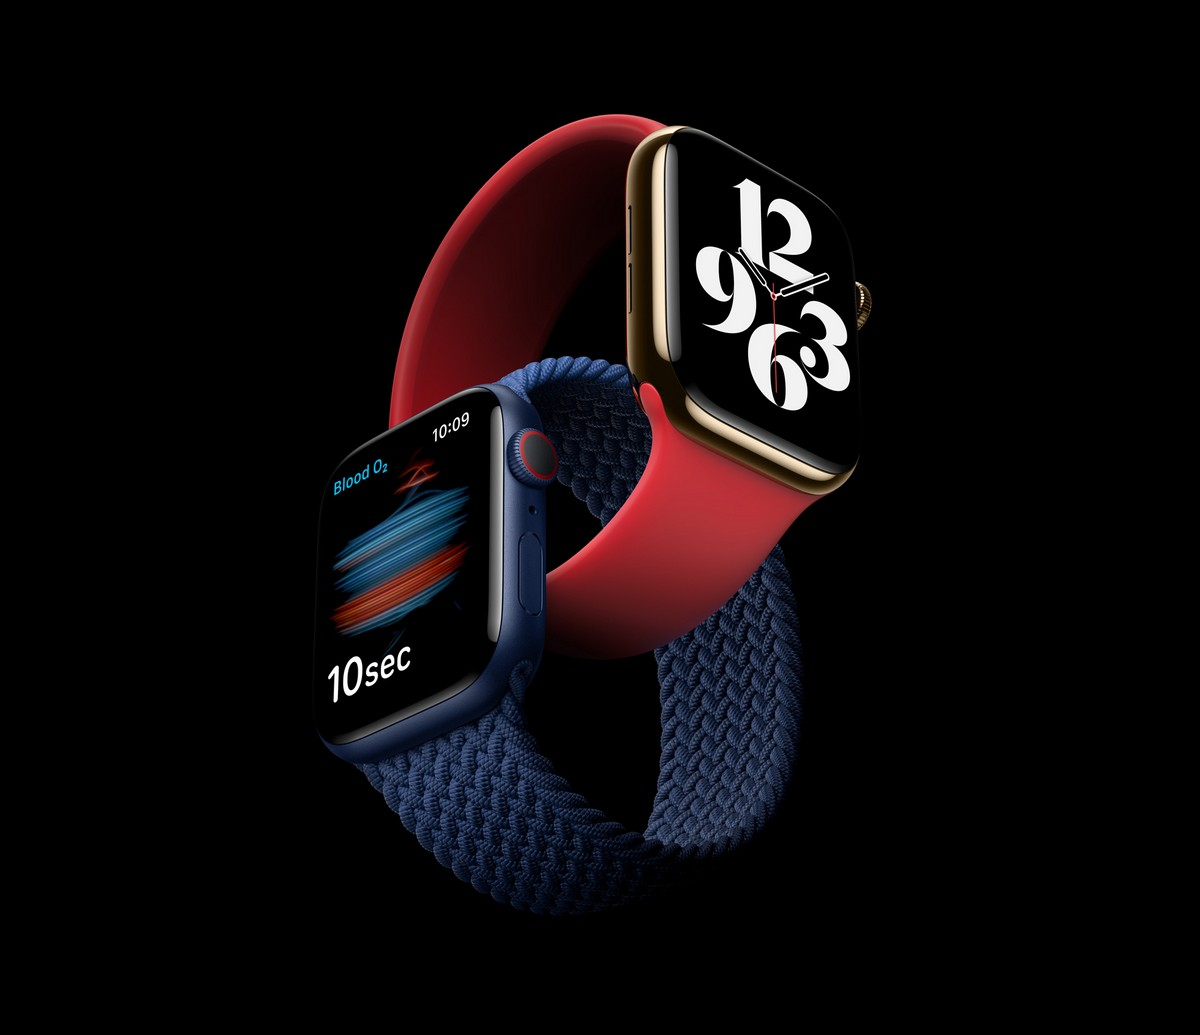 New Study By Apple To Test Whether Apple Watch Is Capable To Find COVID-19 Or Not?